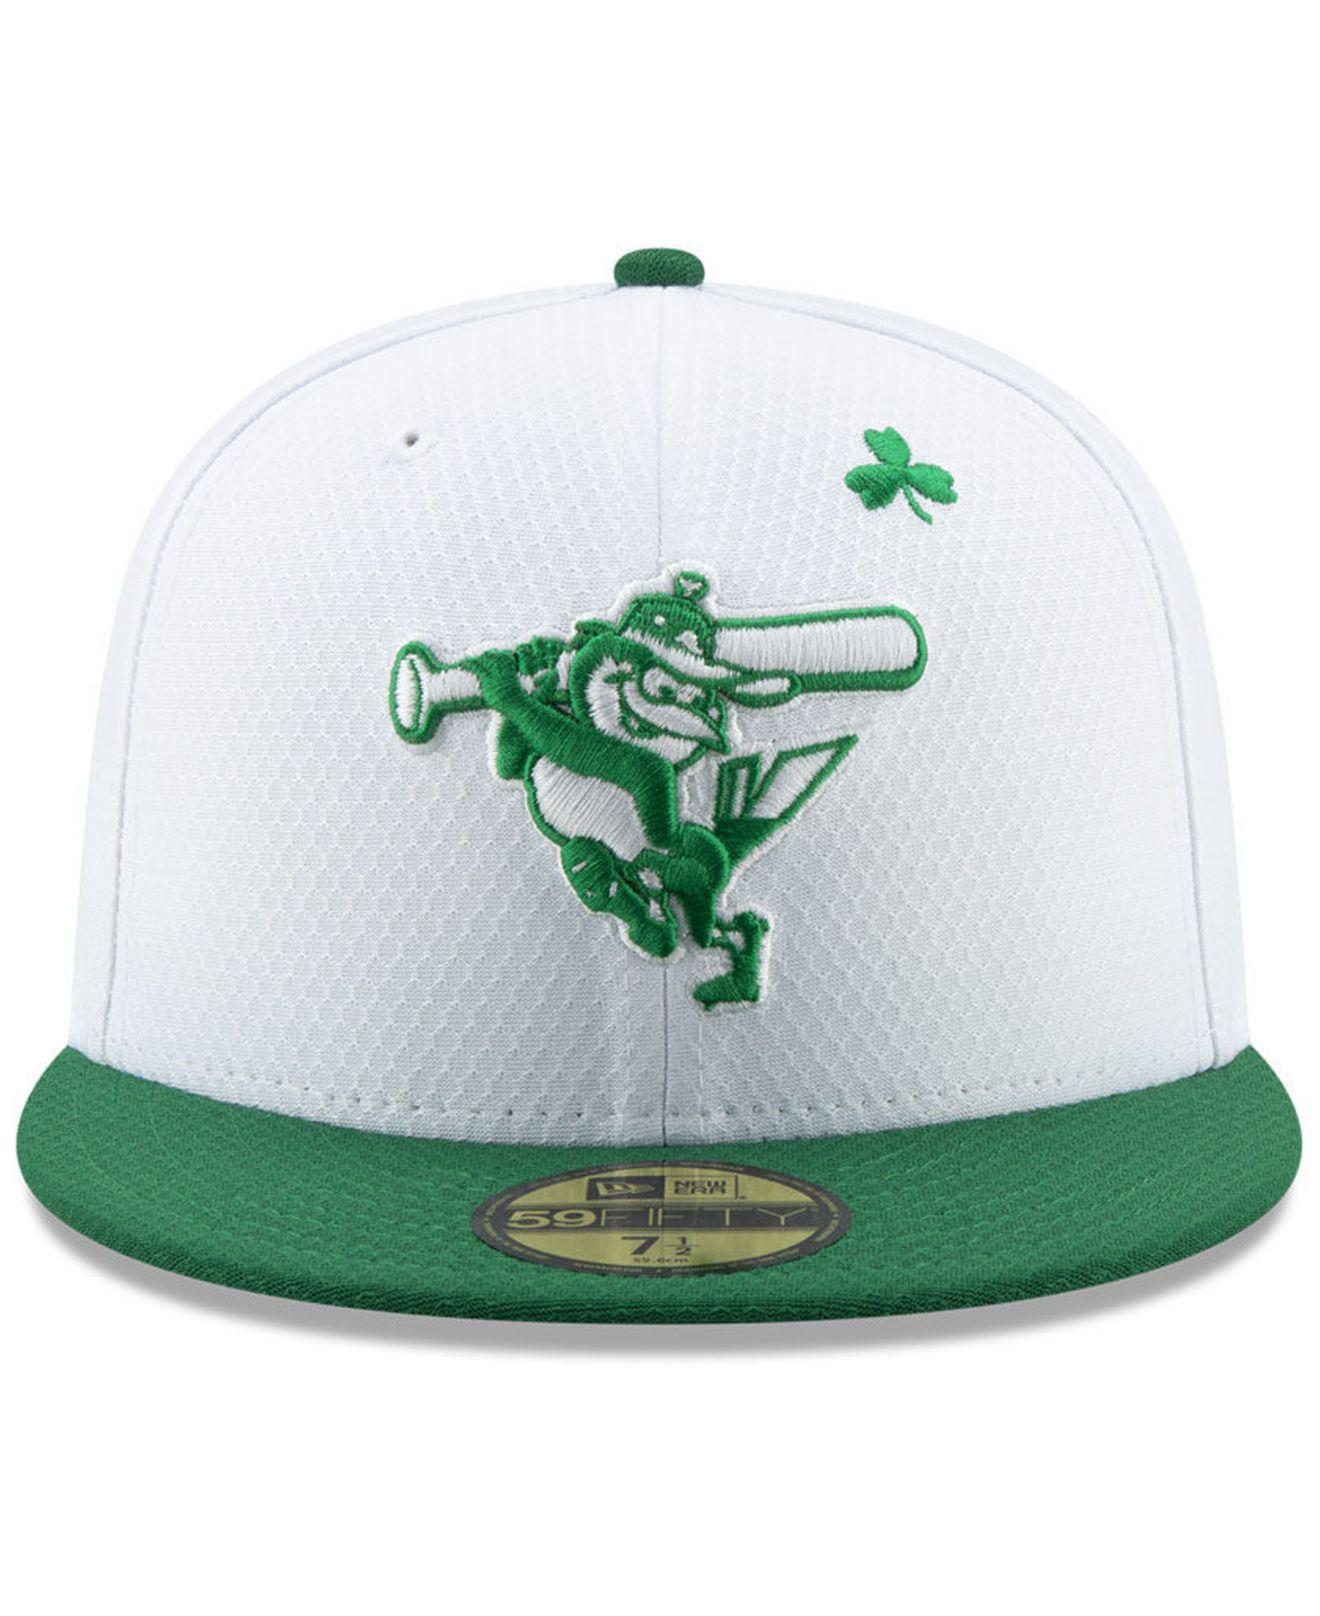 official photos 79f75 c0b69 Lyst - KTZ Baltimore Orioles St. Pattys Day 59fifty-fitted Cap in Green for  Men